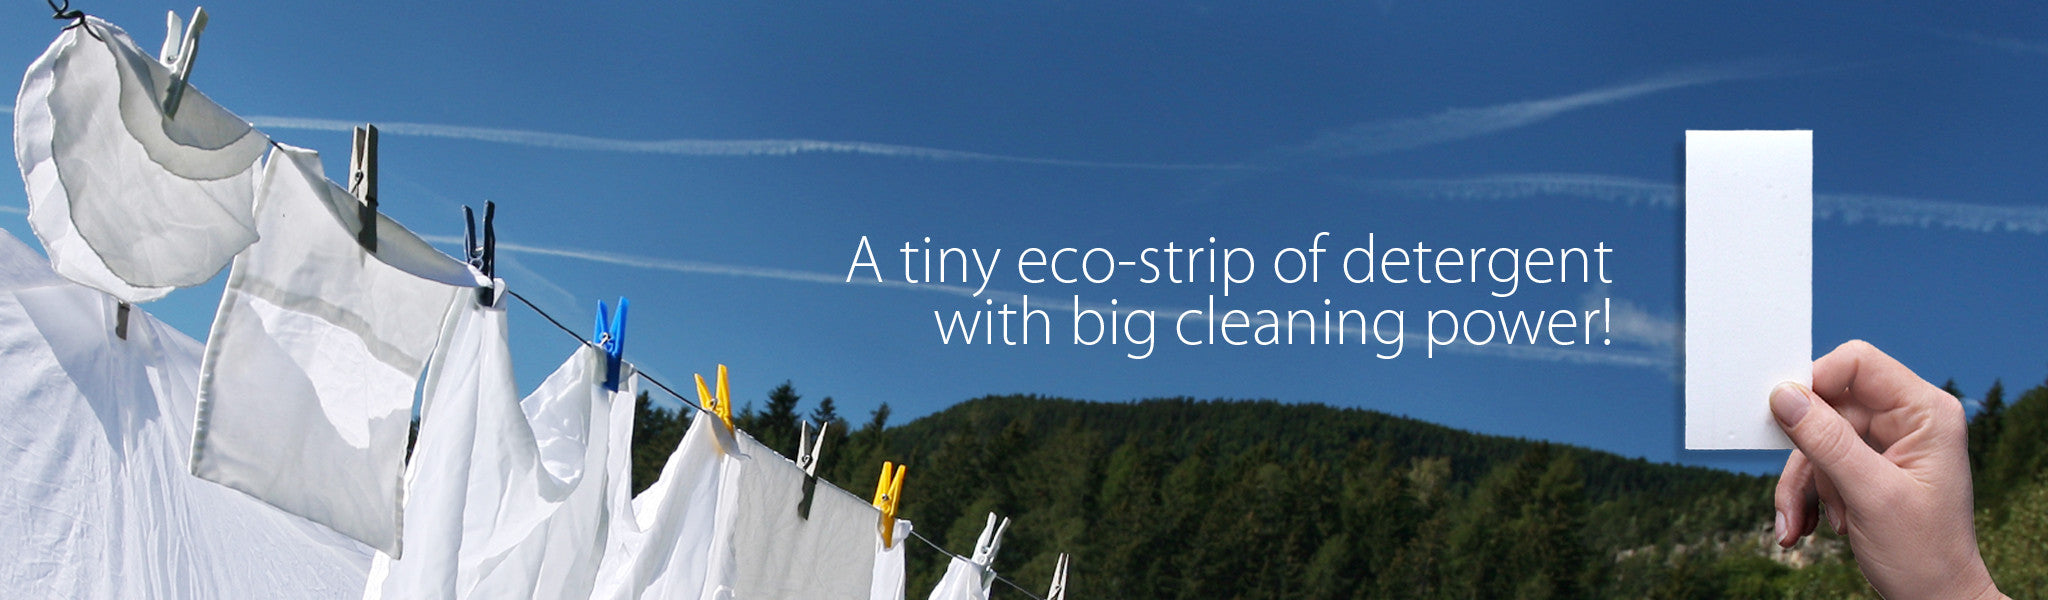 A tiny eco-strip of detergent with big cleaning power!